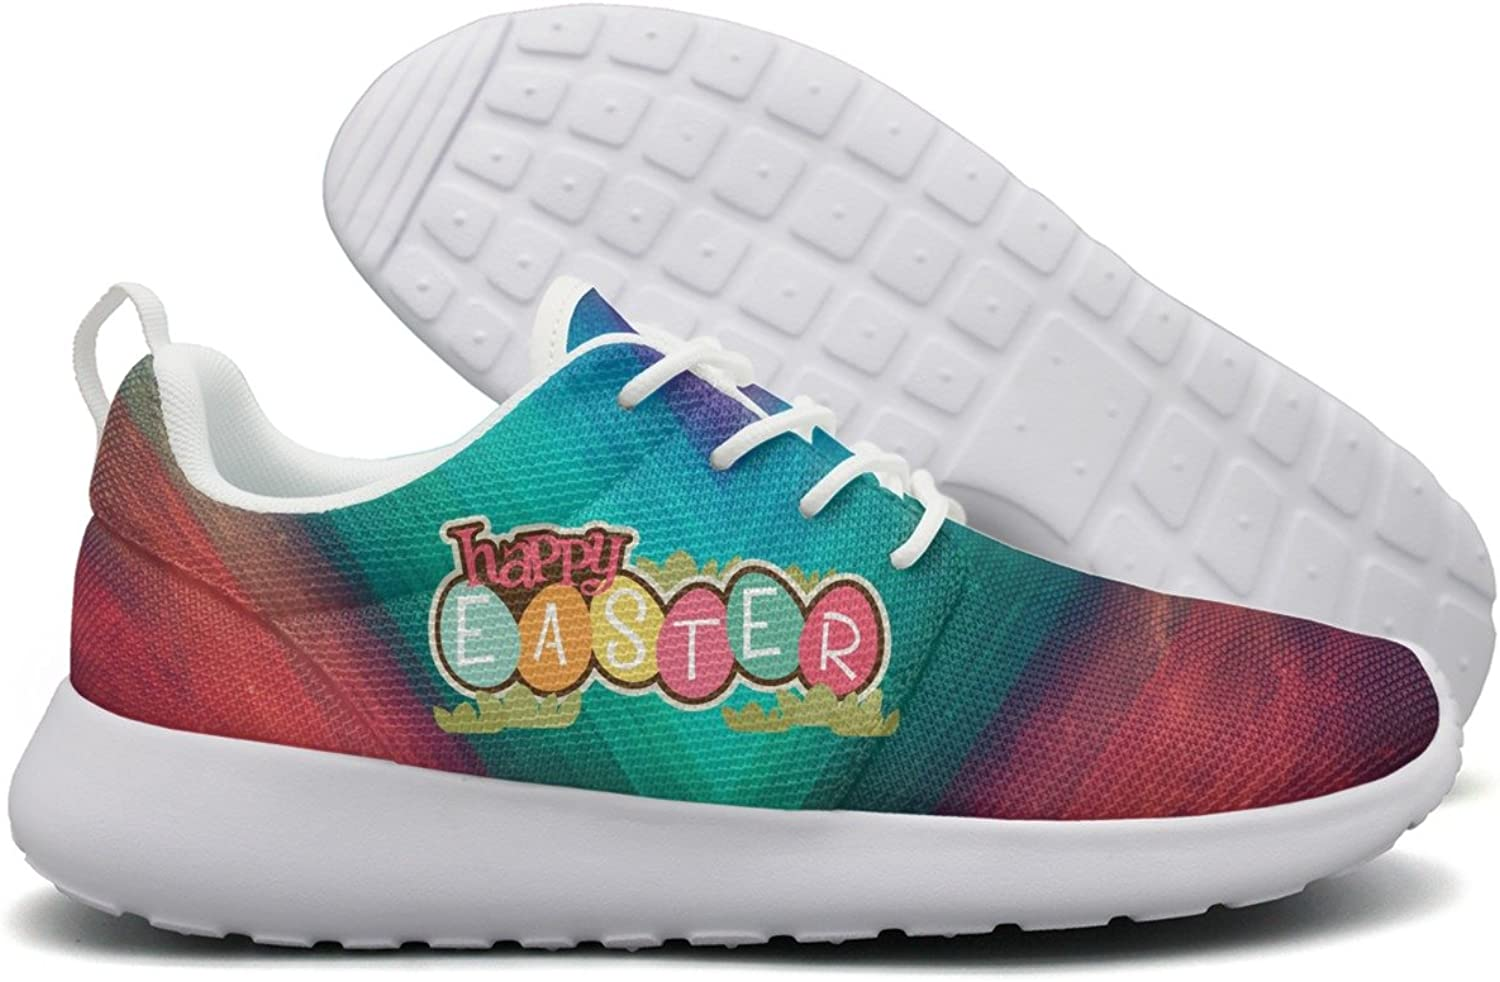 Happy Easter Day 2018 Womens Flex Mesh Lightweight shoes Women